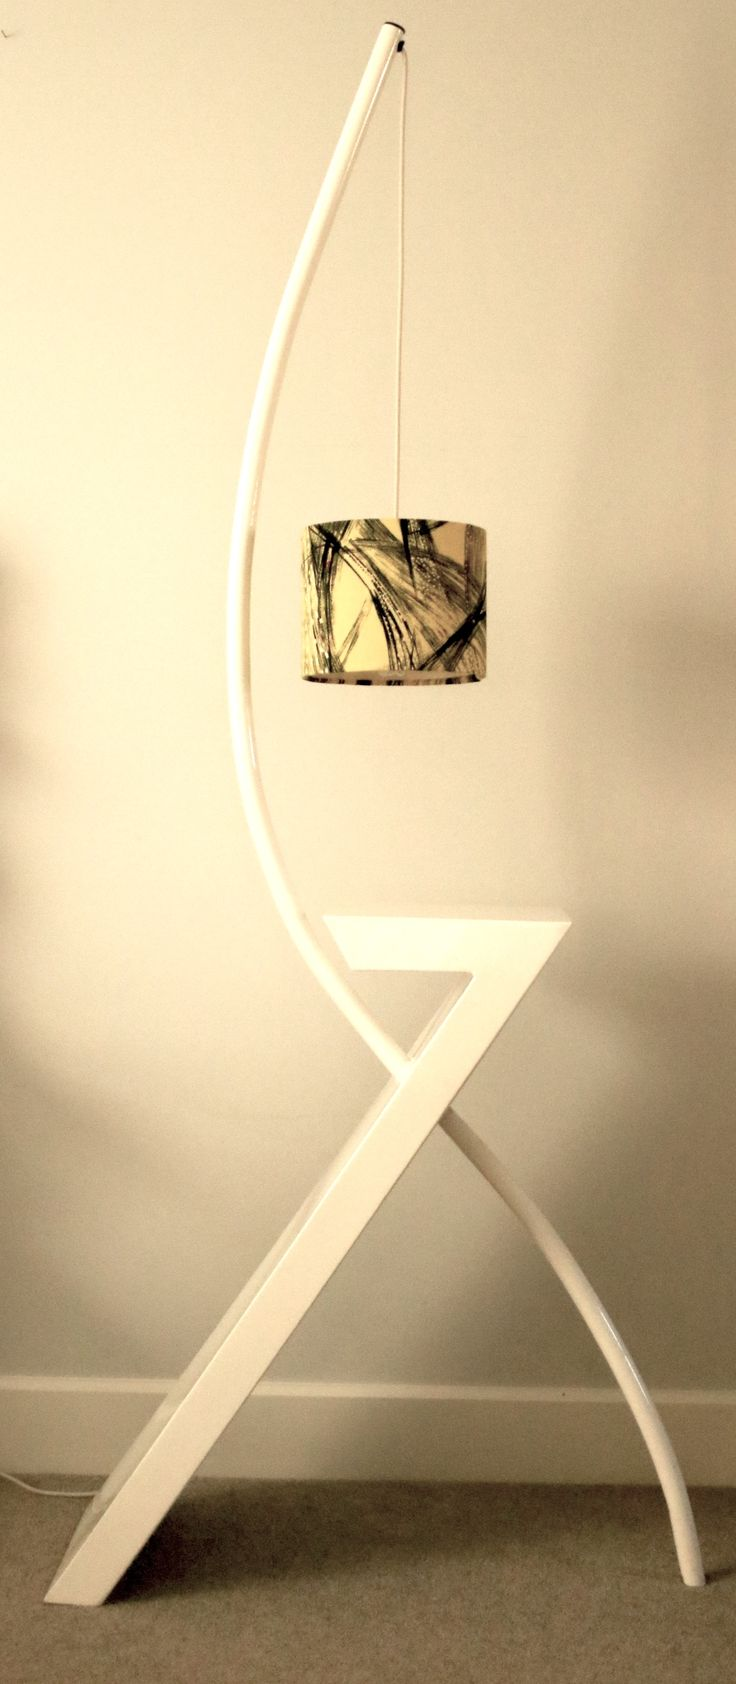 White steel floor lamp side table combined, designed by Jane Handford Design